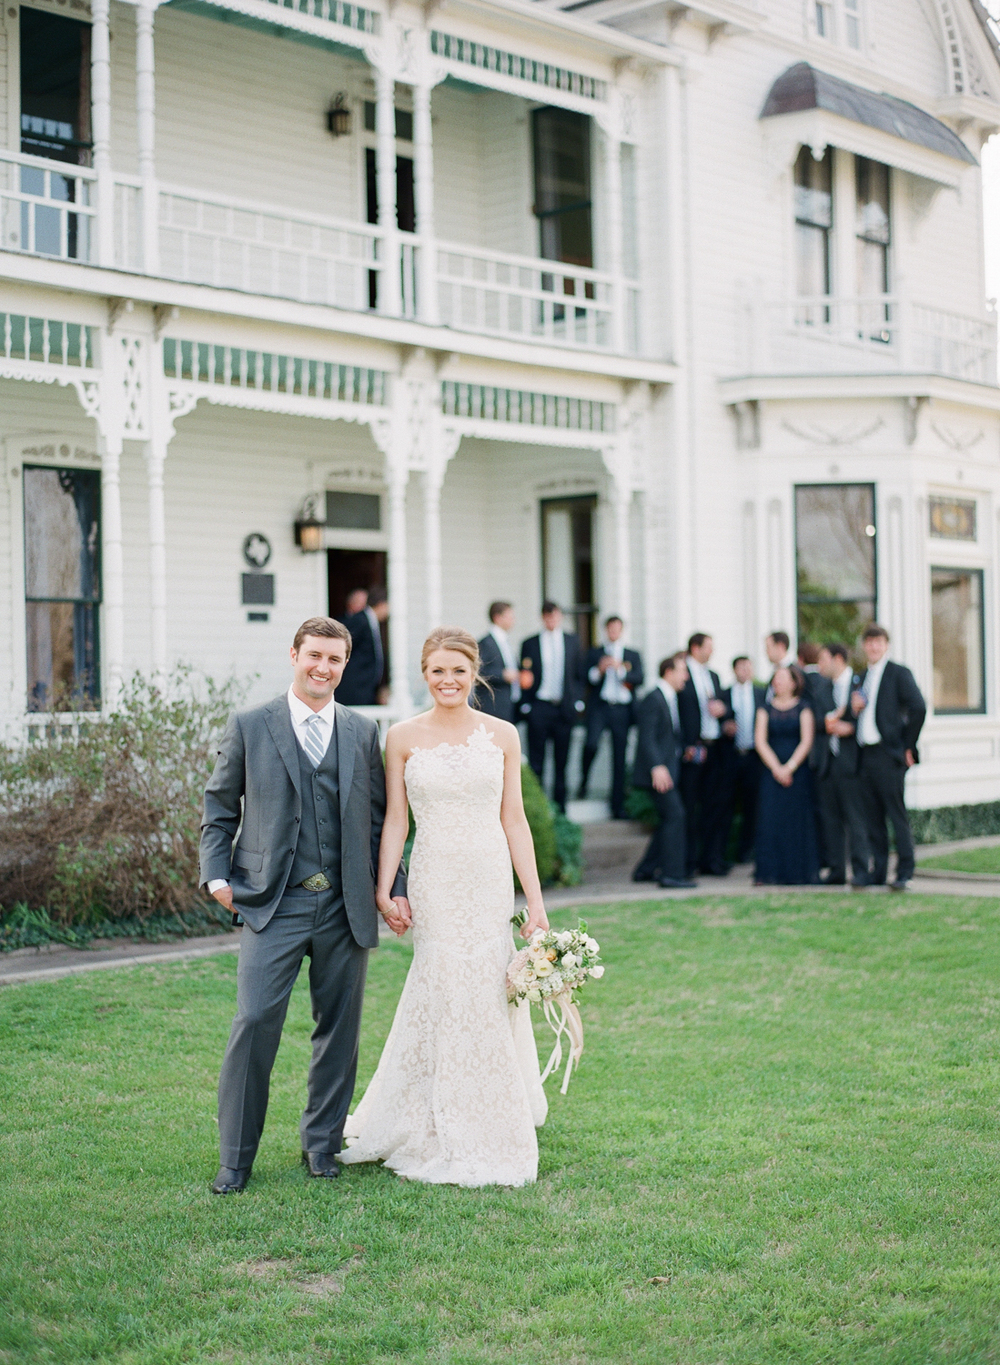 BARR_MANSION_WEDDING_MATTHEW_MOORE_PHOTOGRAPHY_00083.jpg